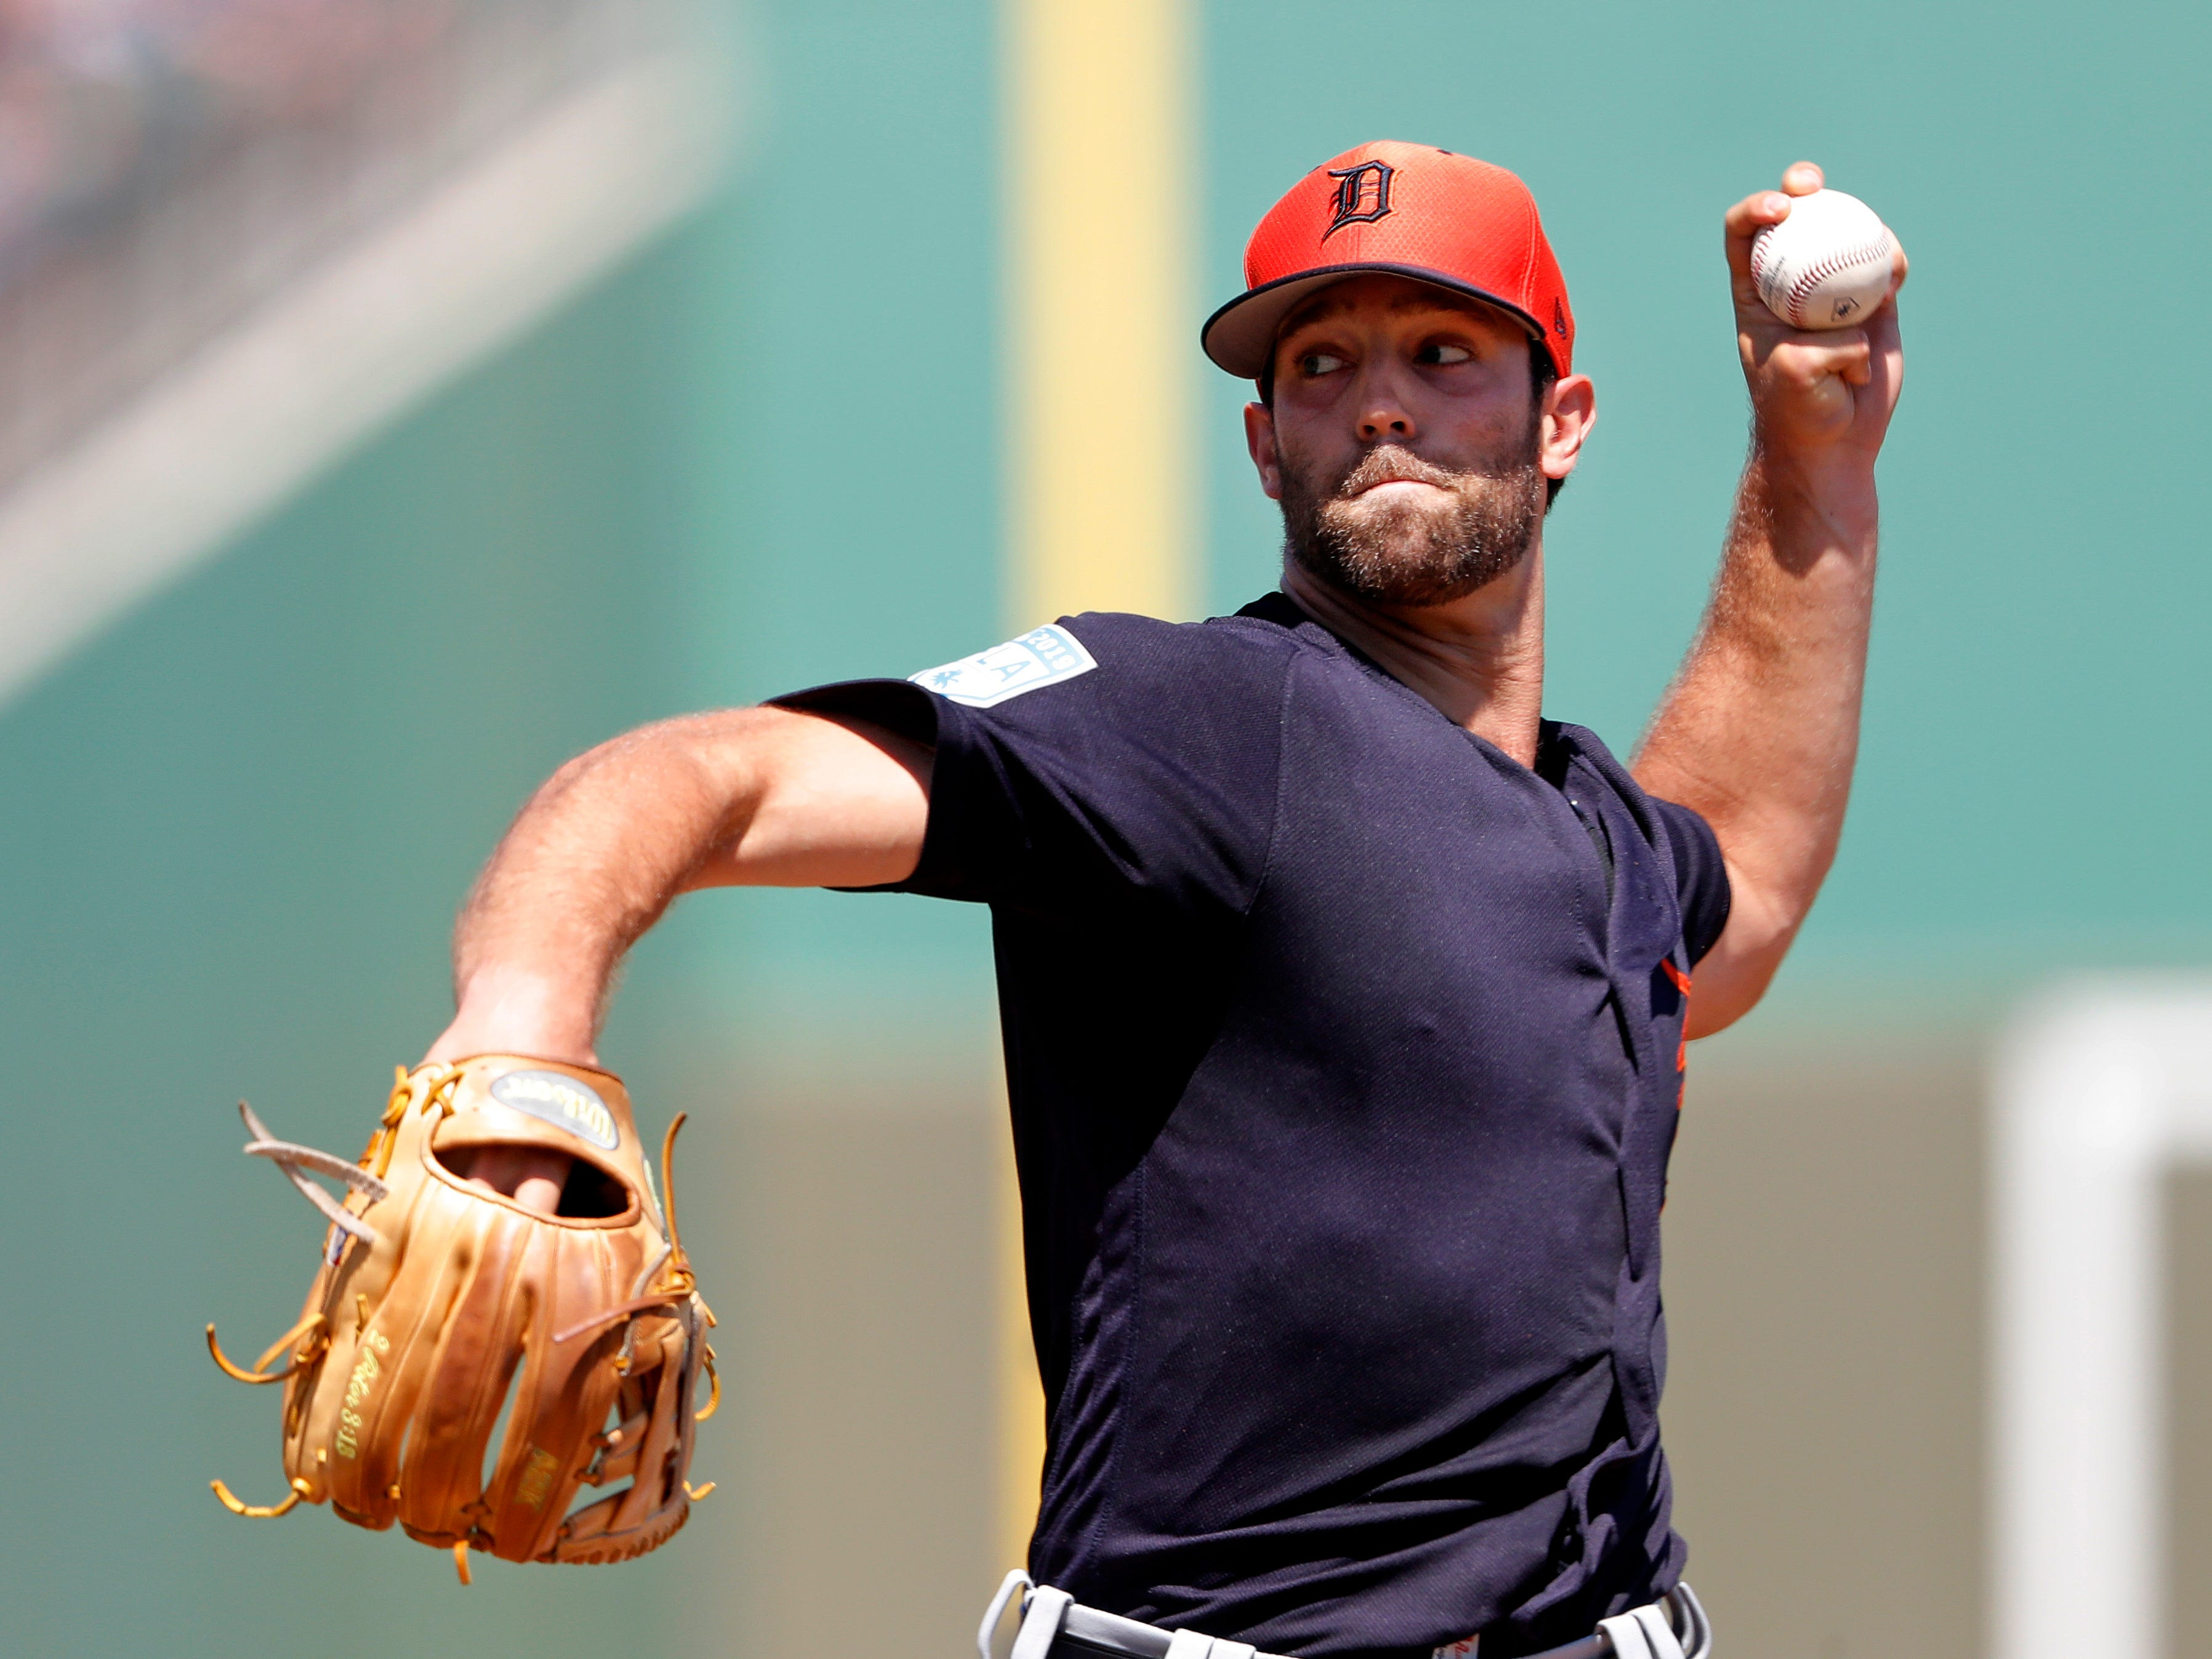 Tigers starting pitcher Daniel Norris works in the first inning. He pitched three scoreless innings.